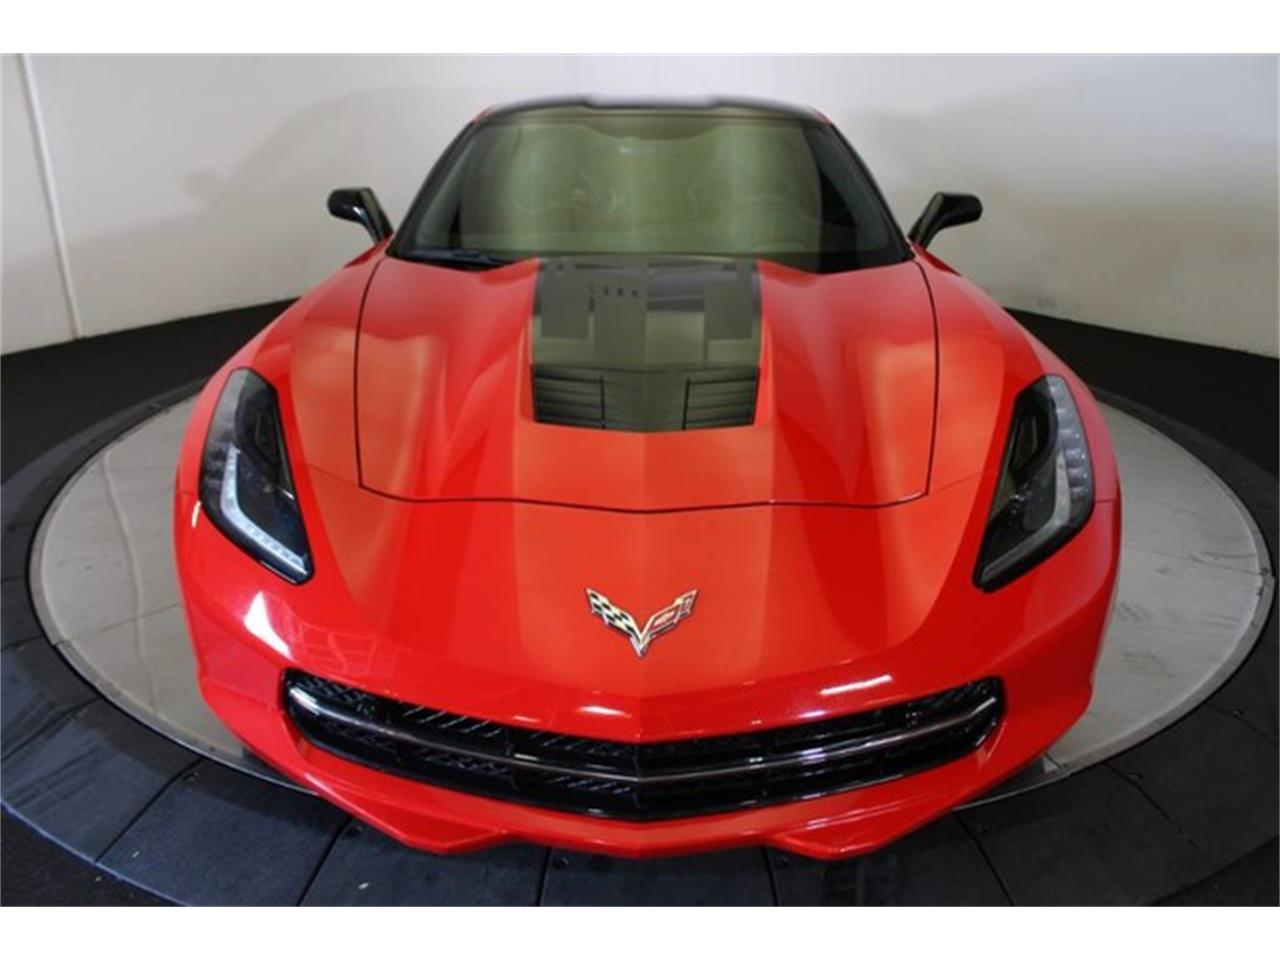 2018 Chevrolet Corvette (CC-1263748) for sale in Anaheim, California